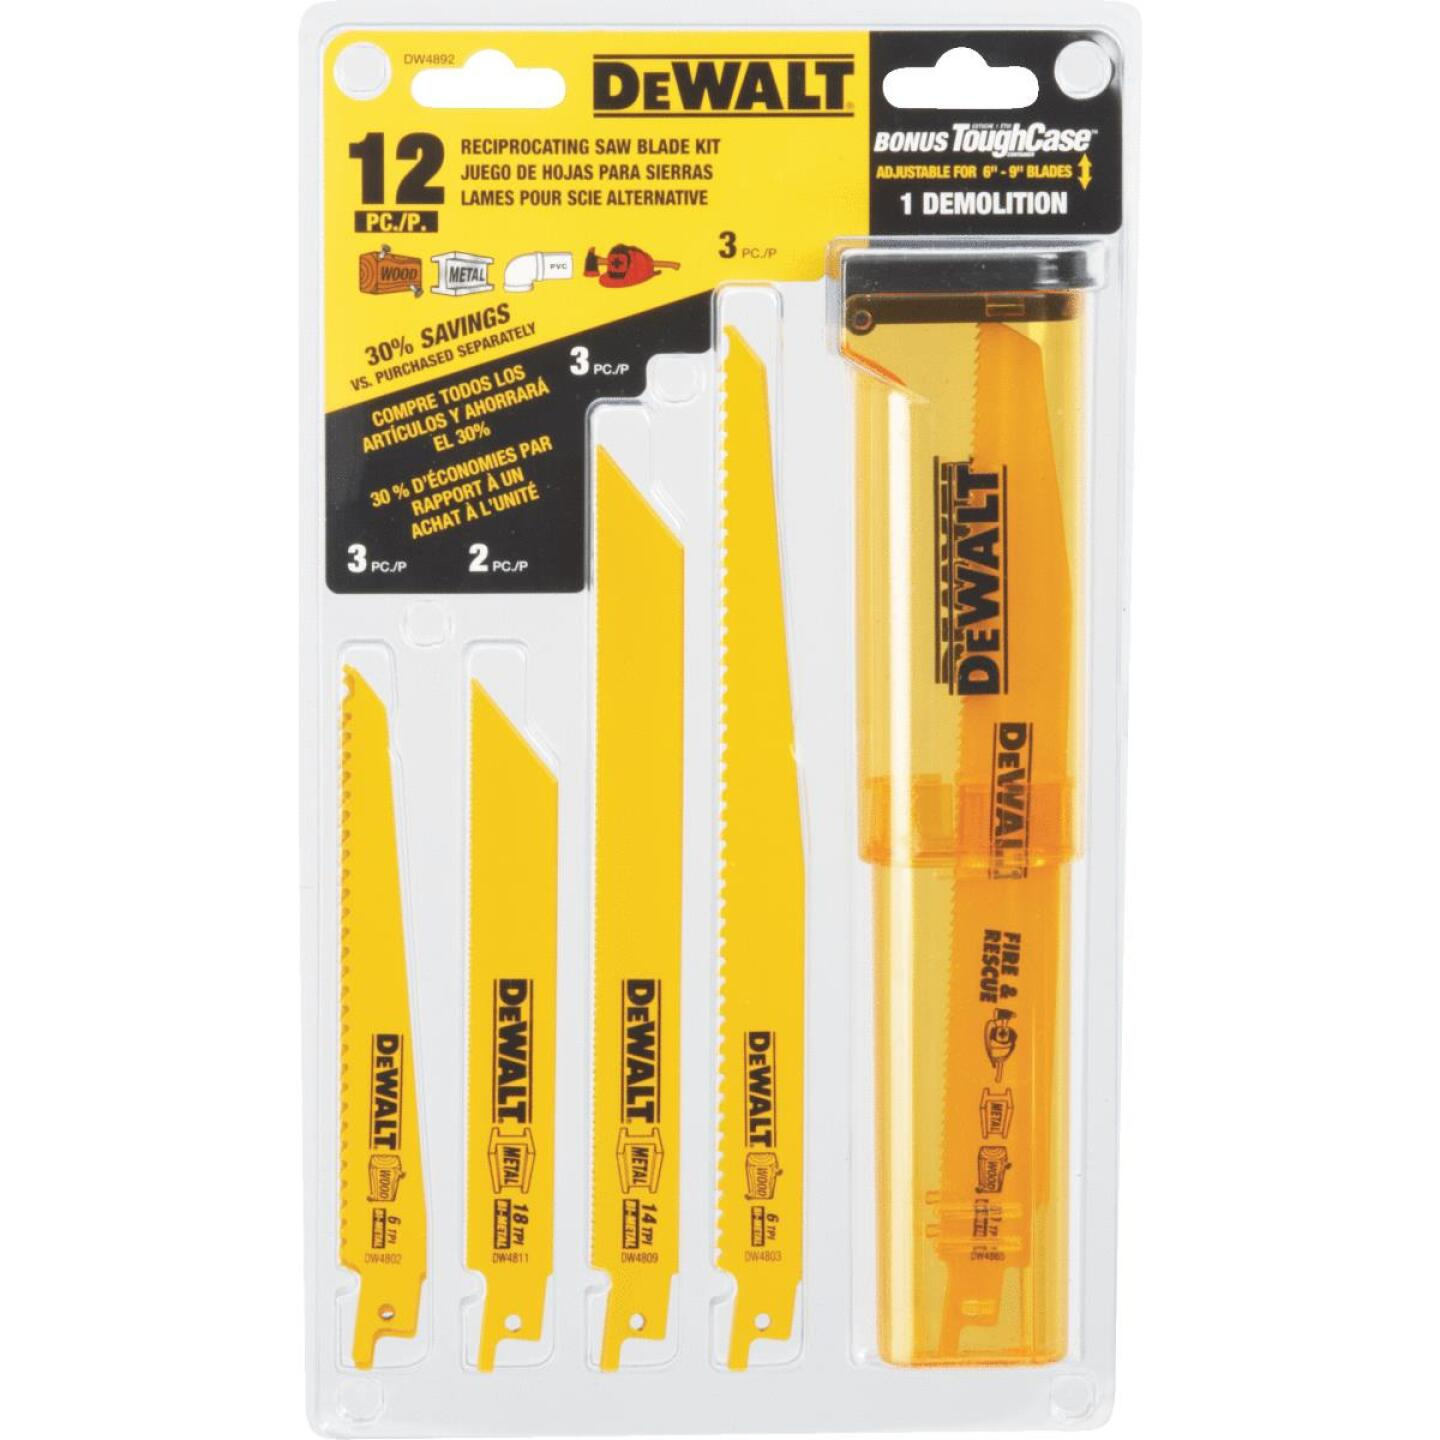 DeWalt 12-Piece Reciprocating Saw Blade Set Image 4